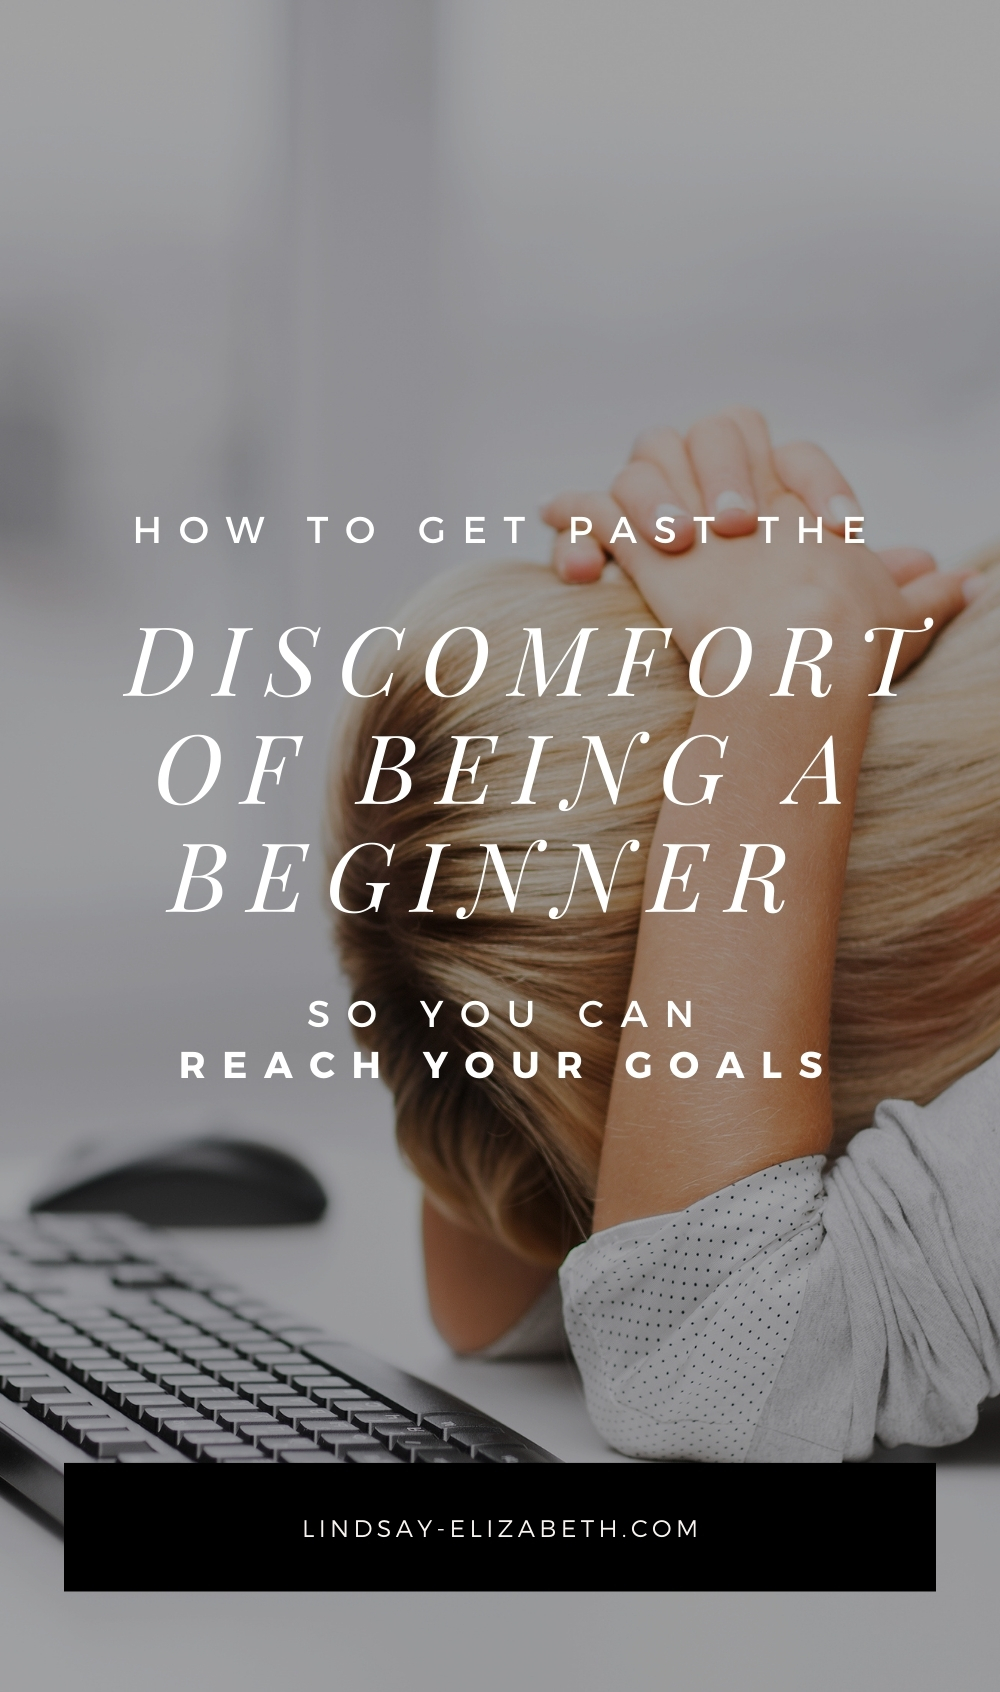 The discomfort required to grow is what keeps many people from reaching their goals. However, it's important to trust the process when you're in the beginning stages of something, whether it's learning/honing a new skill, starting a new venture, or finding your way through unchartered territory. Follow these tips to get a new perspective on being a beginner at every stage so you can embrace the process and consistently move forward to achieve your dreams. #mindset #goals #productivity